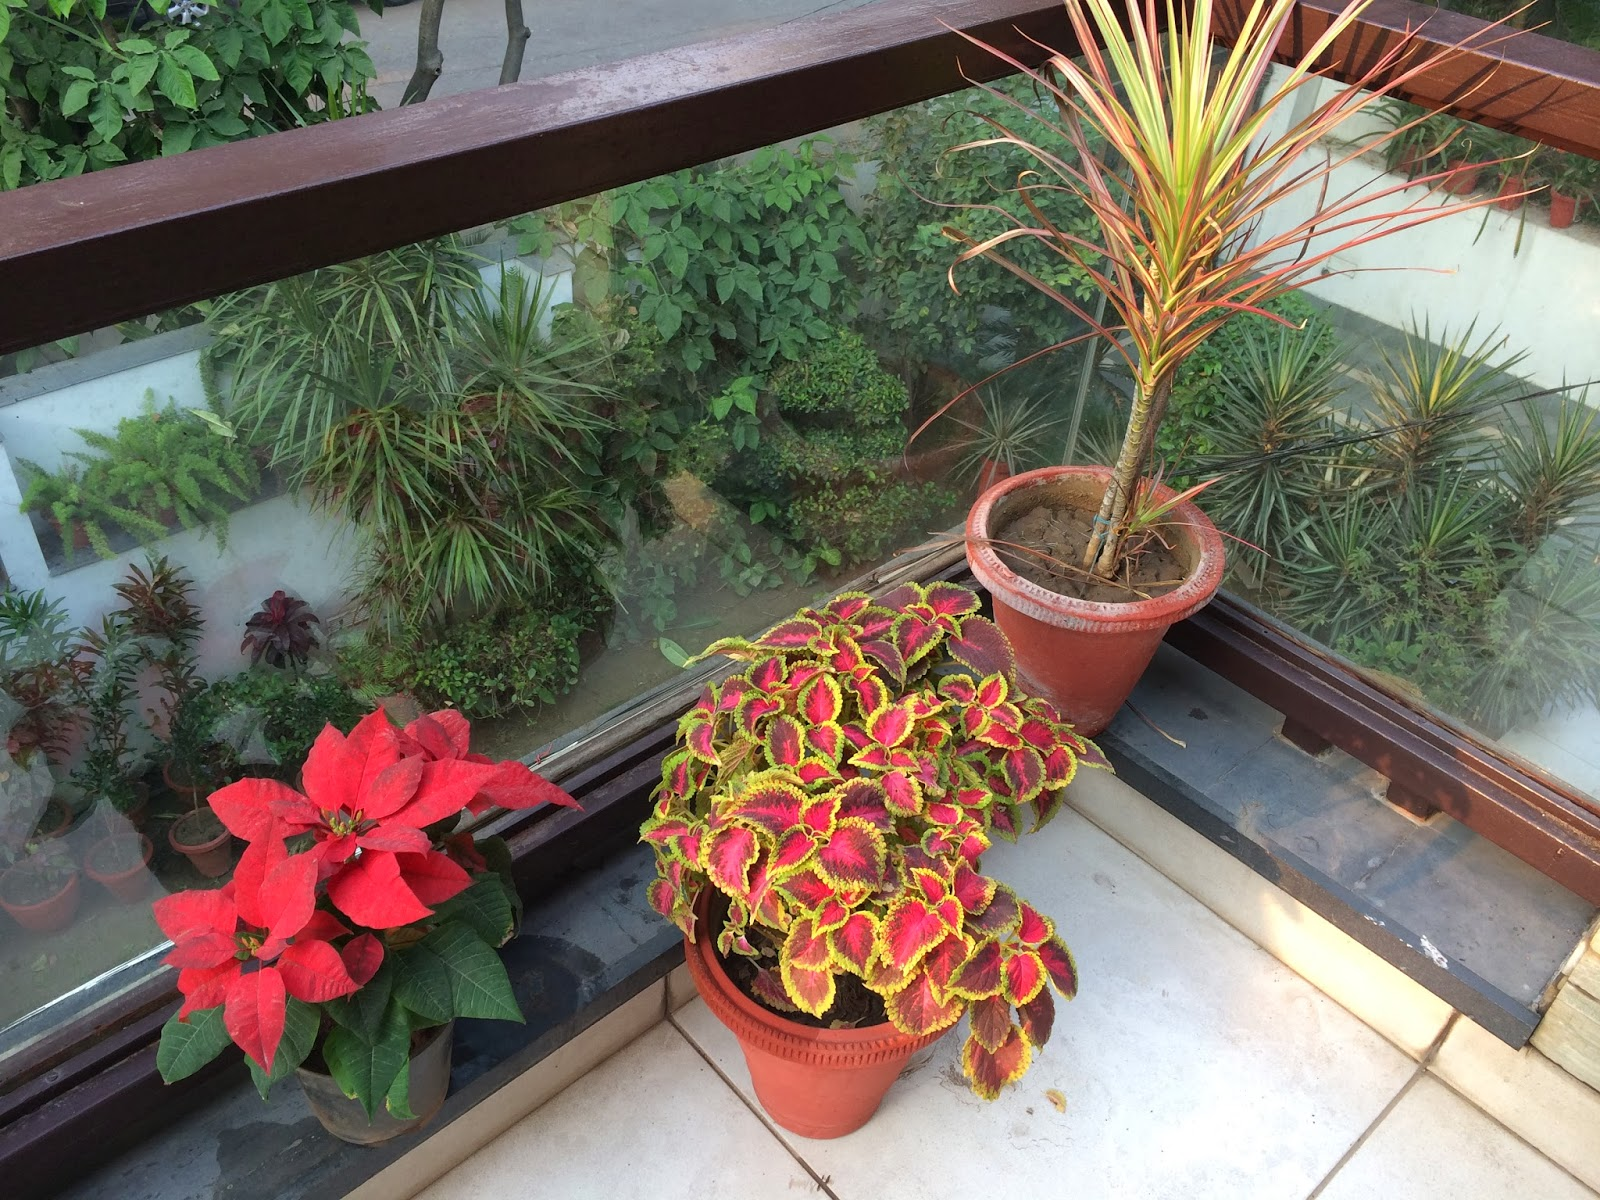 Dhara...The Earth...An Indian gardening blog: My balcony garden with Poinsettias, Mums and Coleus